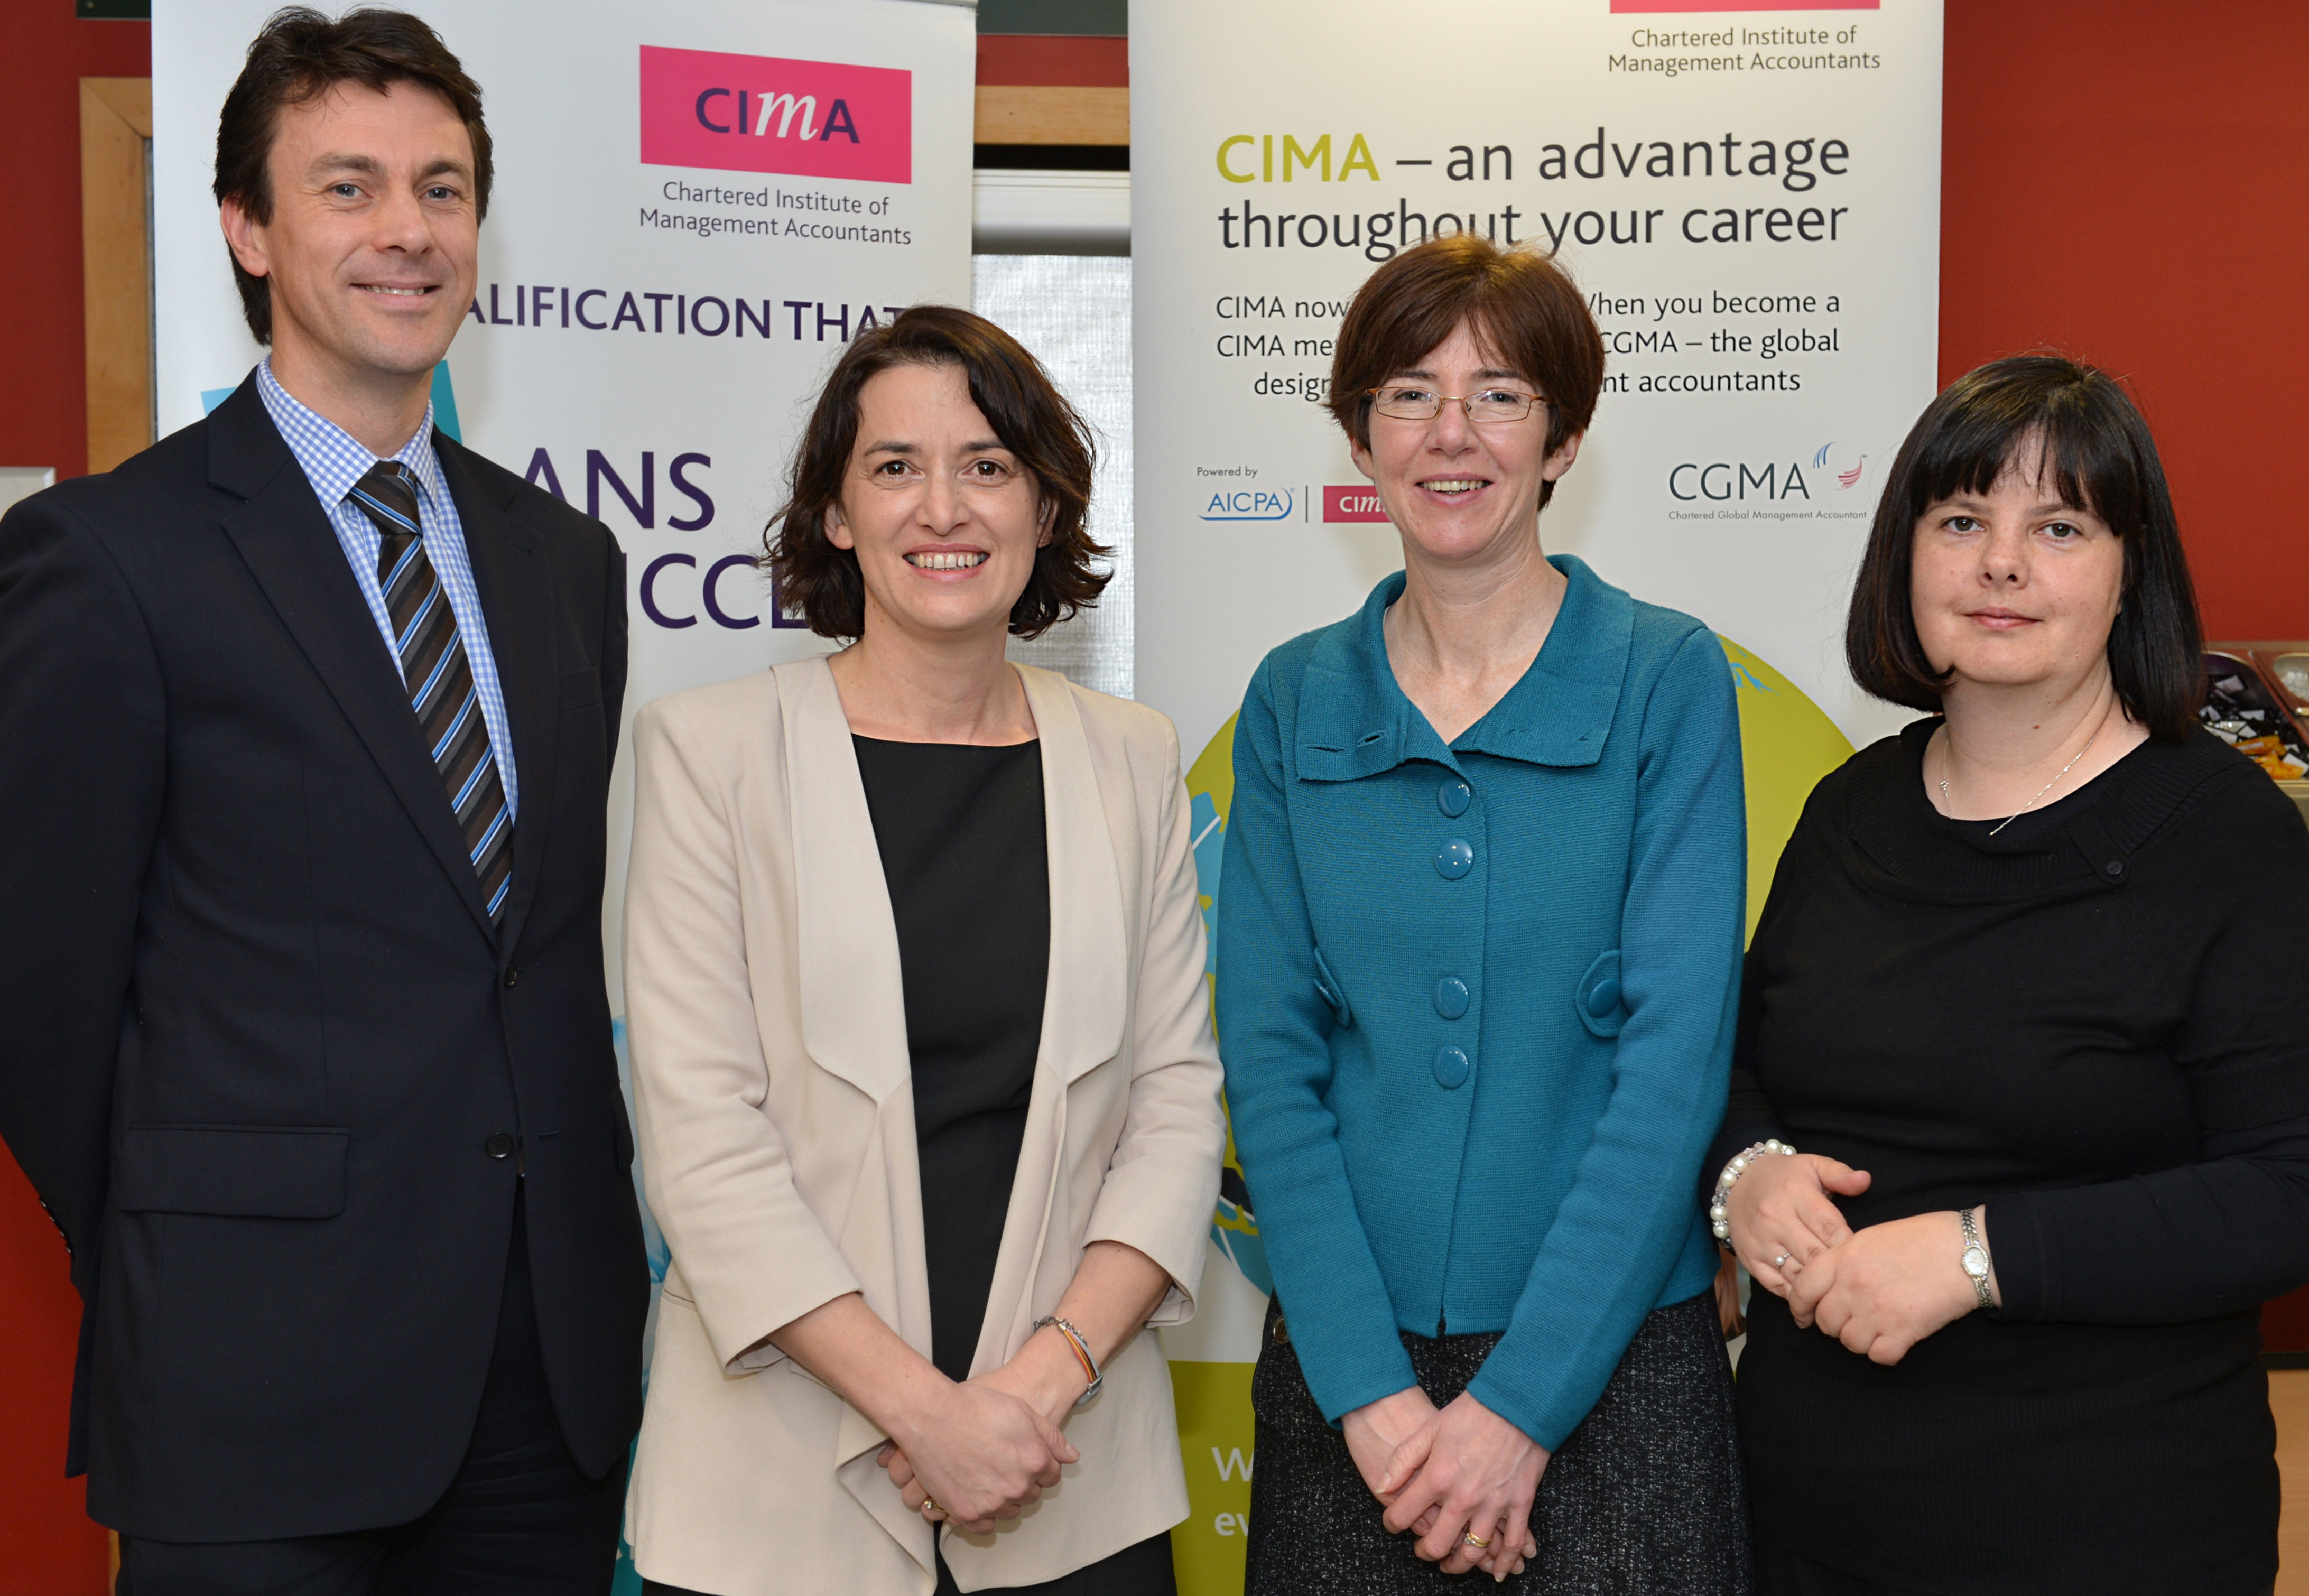 Brian Duffy(CIMA), Dr Emer Curtis (NUI Galway), Prof Breda Sweeney (NUI Galway) and Mary Clisham (CIMA) pictured at the CIMA Workshop 'Using Management controls to enable Innovation'